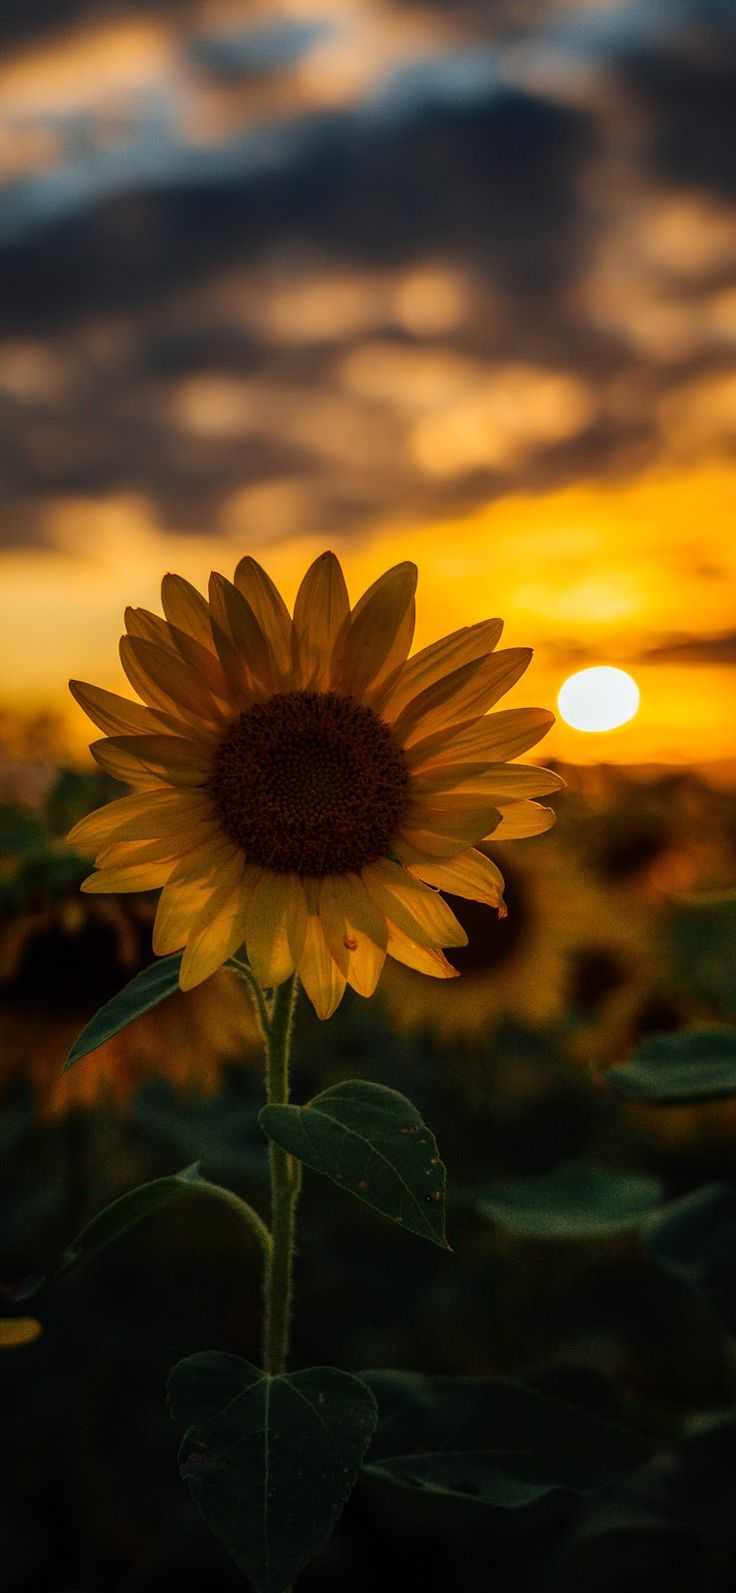 Sunflower wallpaper iphone x ZoomApps Apps World Reviews 736x1593